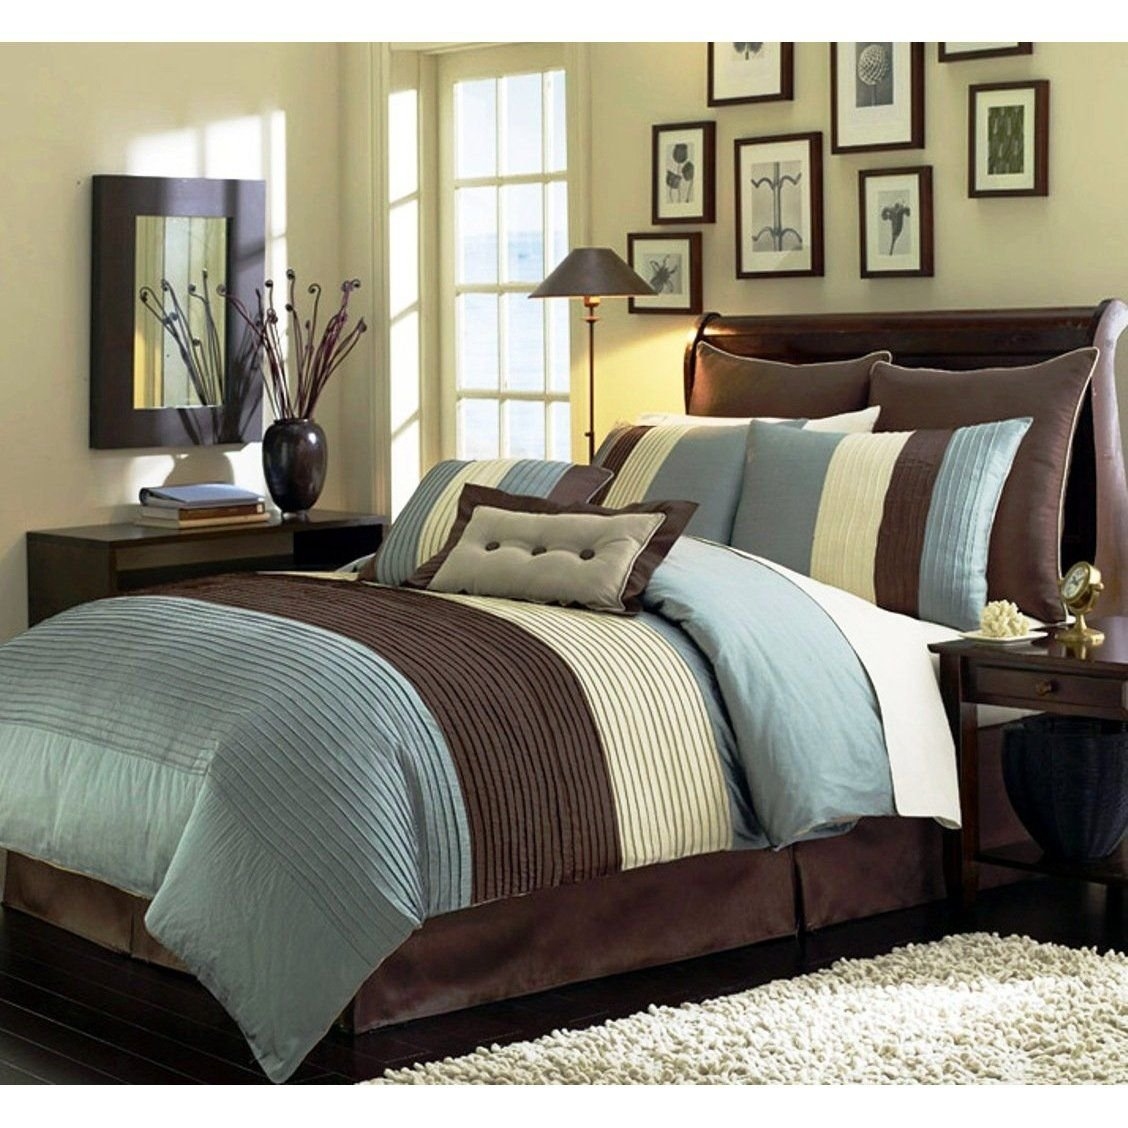 amazoncom  pieces blue beige brown luxury stripe comforter (  - amazoncom  pieces blue beige brown luxury stripe comforter (x)bedinabag set queen size bedding home  kitchen